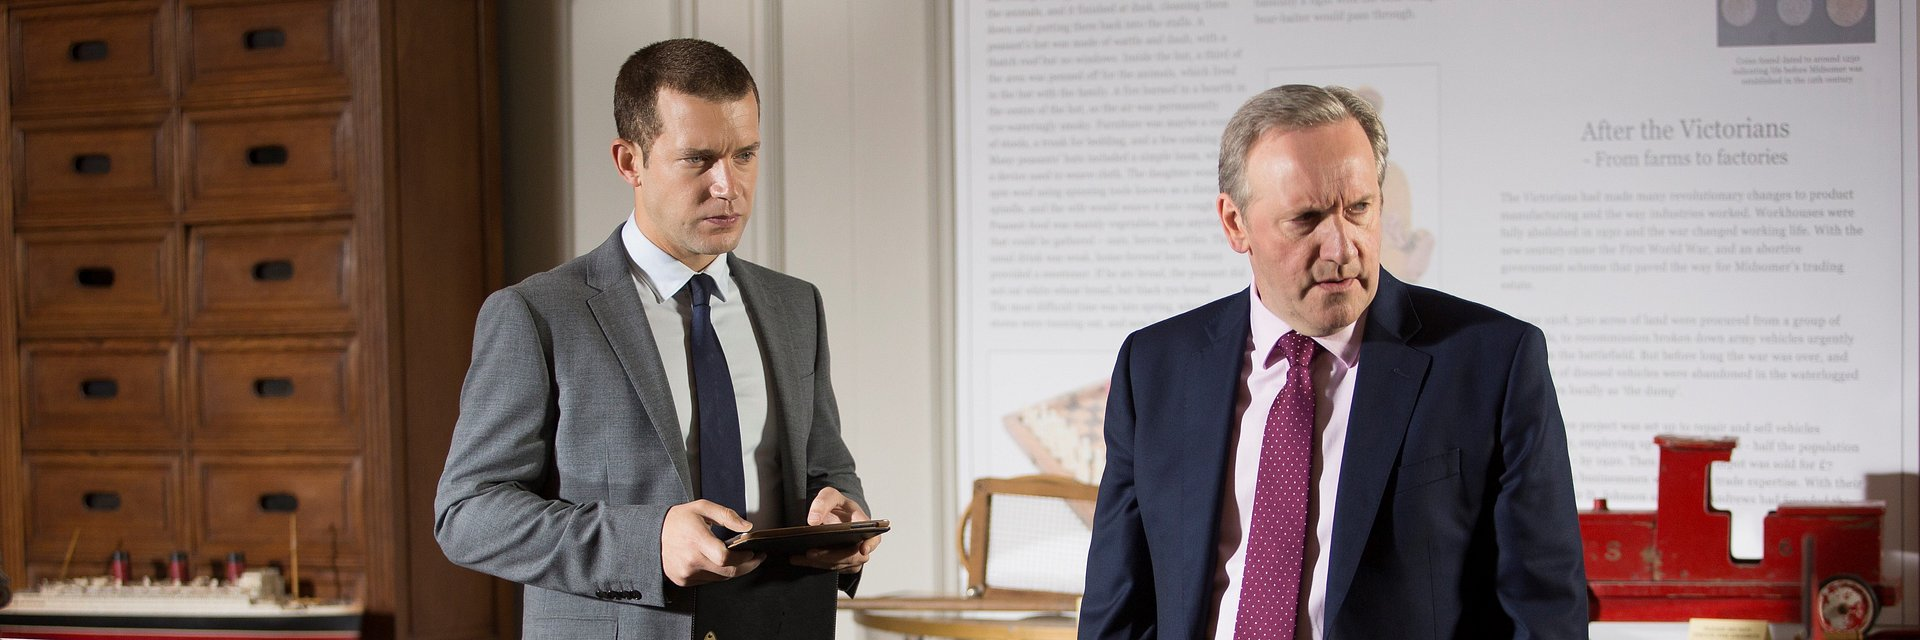 DETETIVES DE 'MIDSOMER MURDERS' INVESTIGAM NOVOS CRIMES NO FOX CRIME